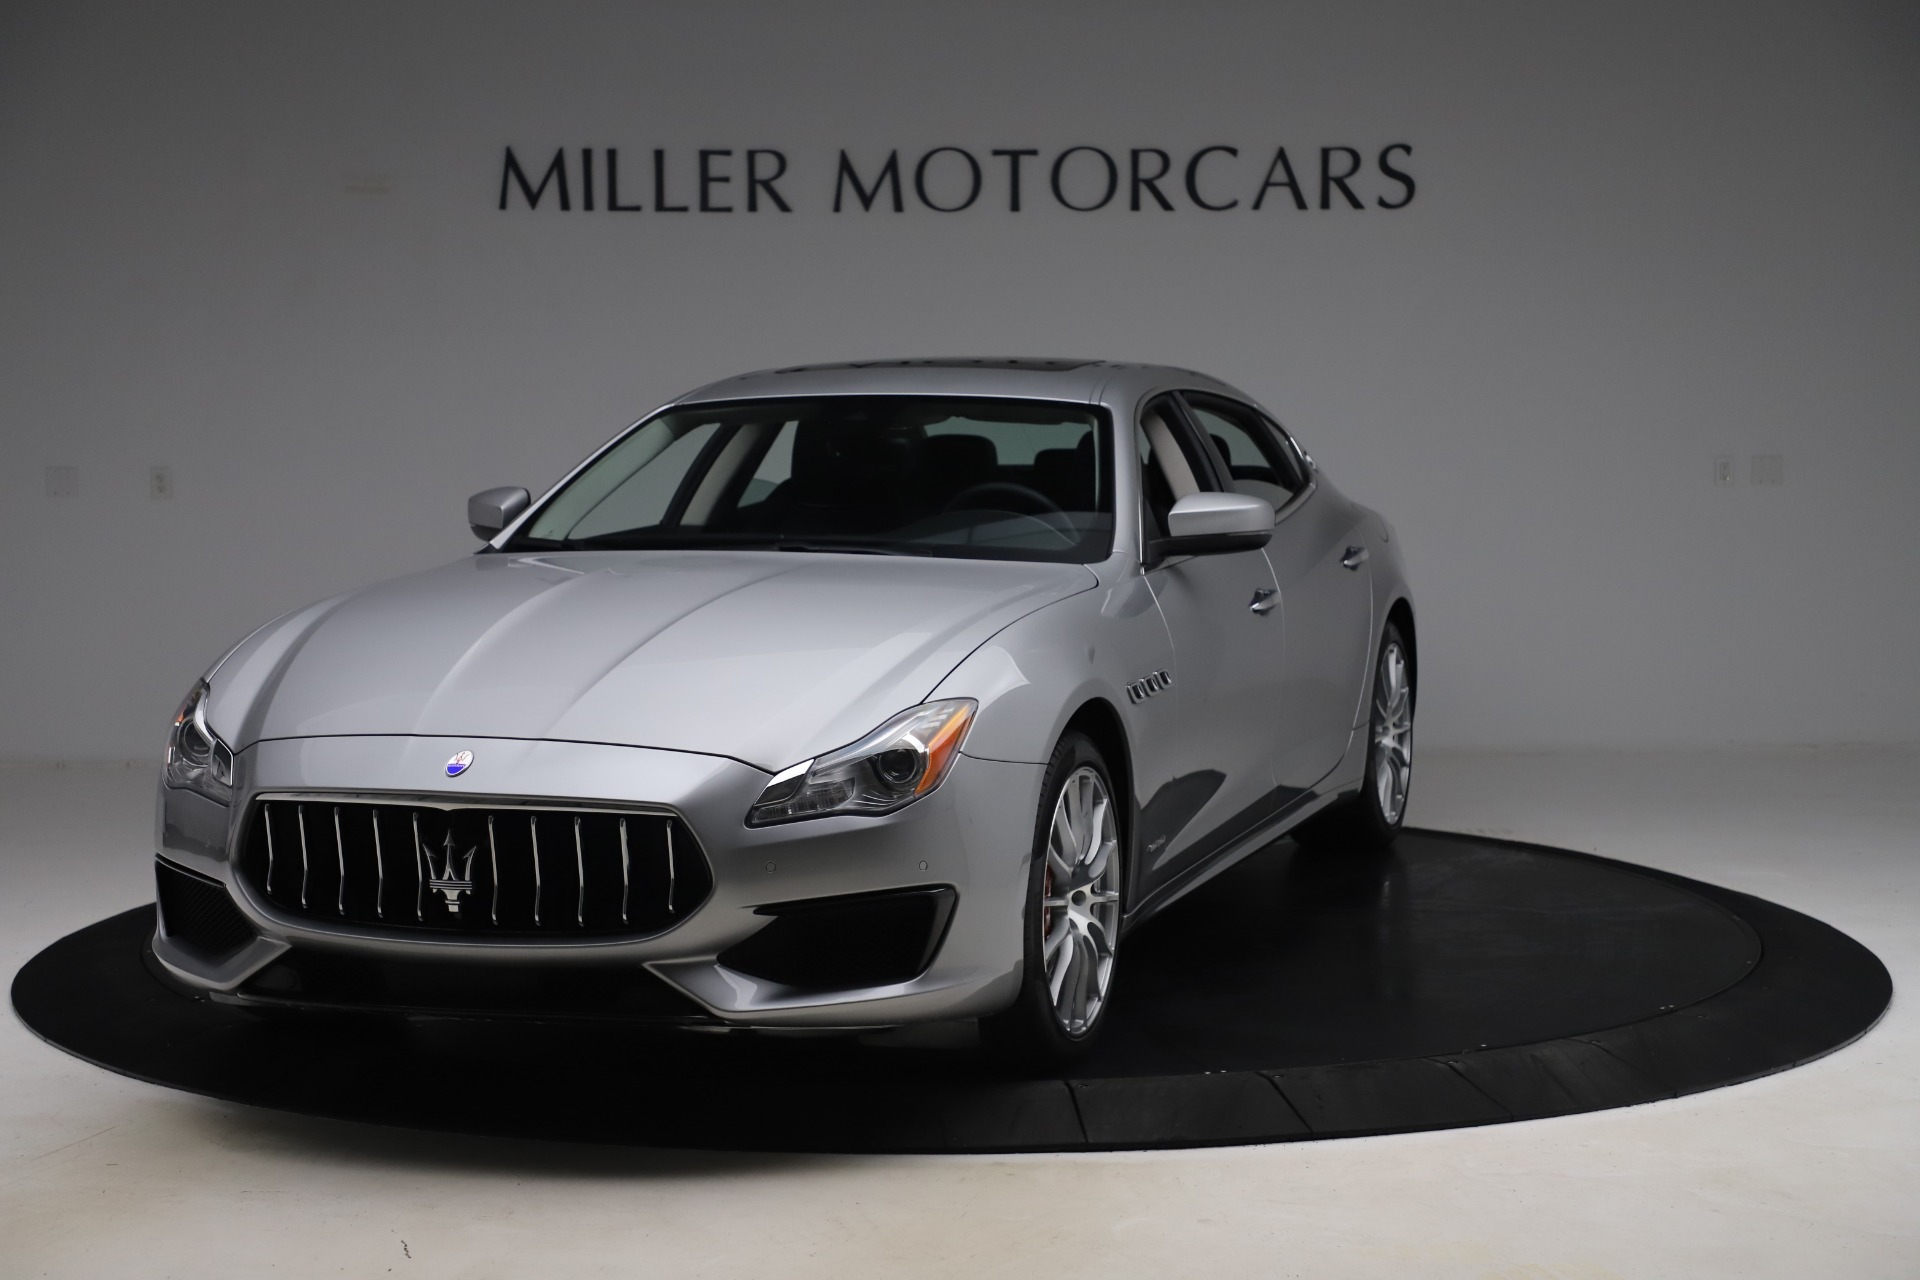 Used 2017 Maserati Quattroporte S Q4 GranSport for sale Sold at Pagani of Greenwich in Greenwich CT 06830 1